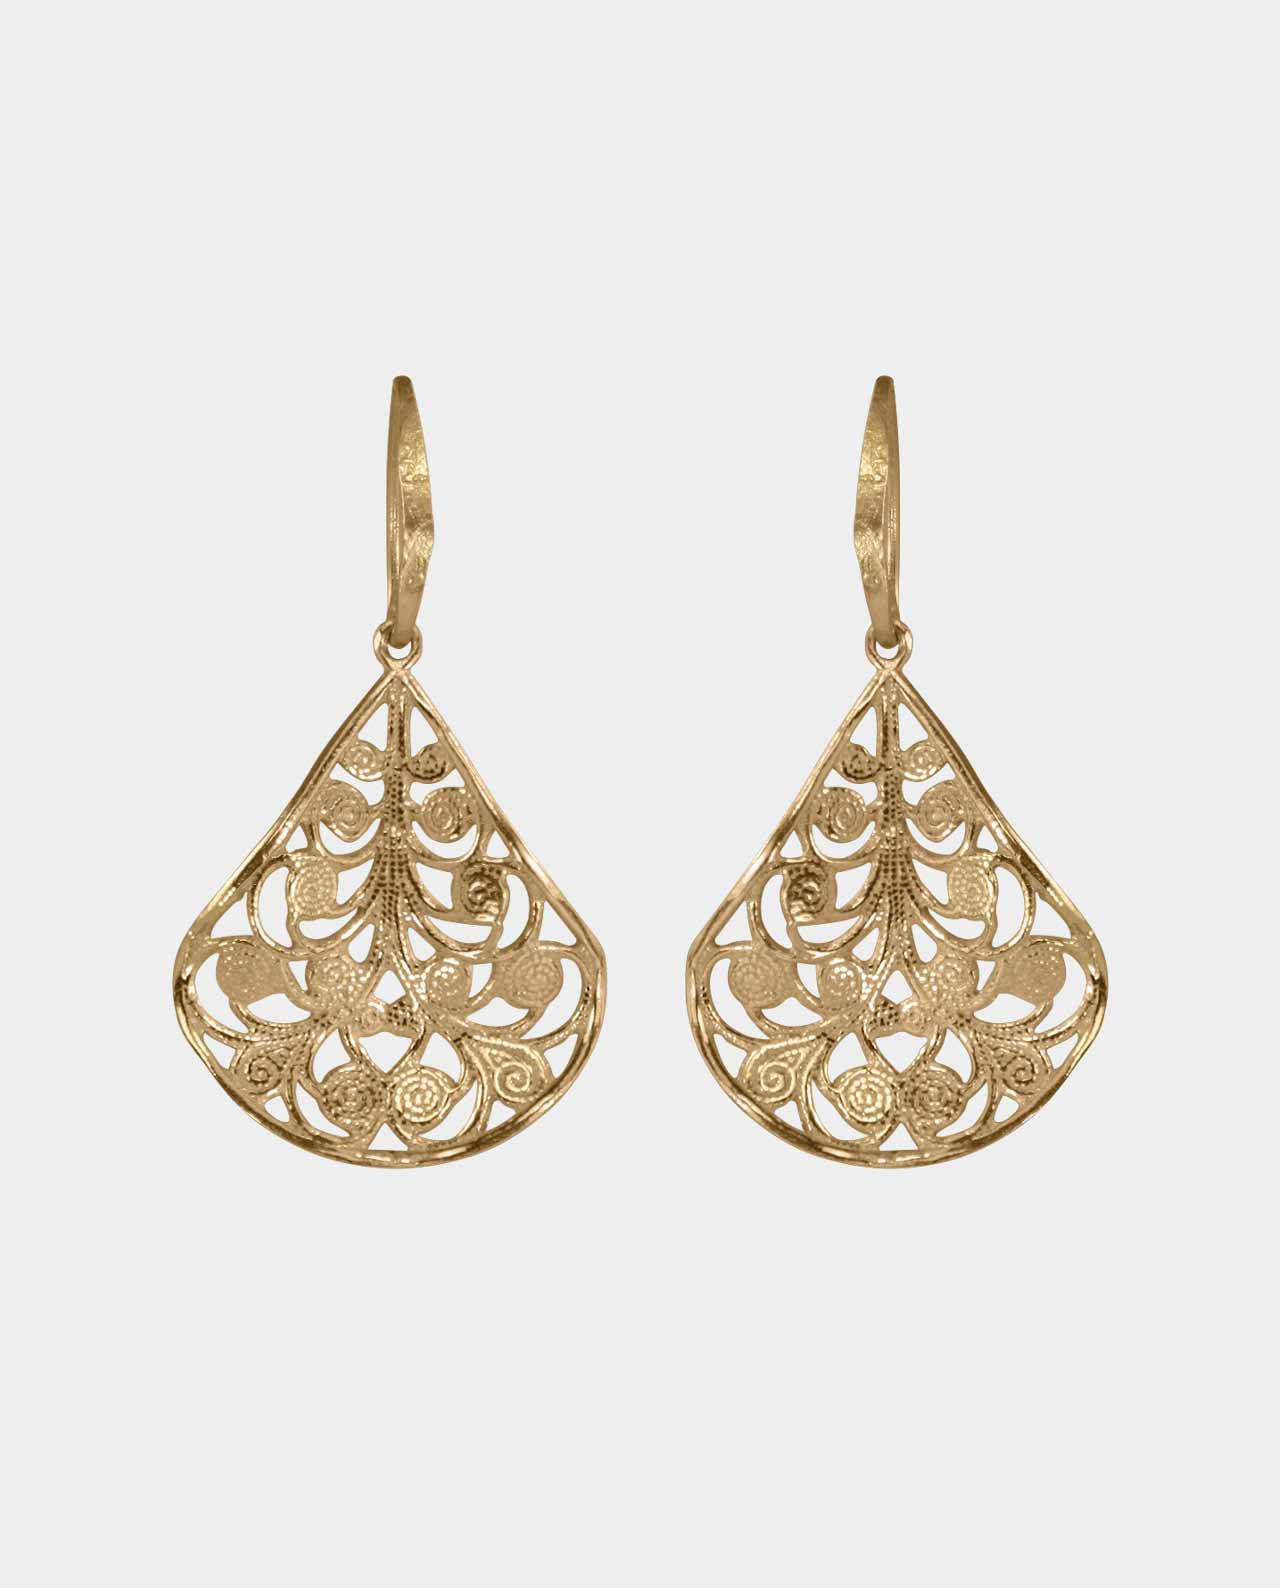 Earrings shaped like gold leaves that shift in the wind and make the gold shine in vivid bevels that match the other rings and brilliant bracelets that you decorate yourself with